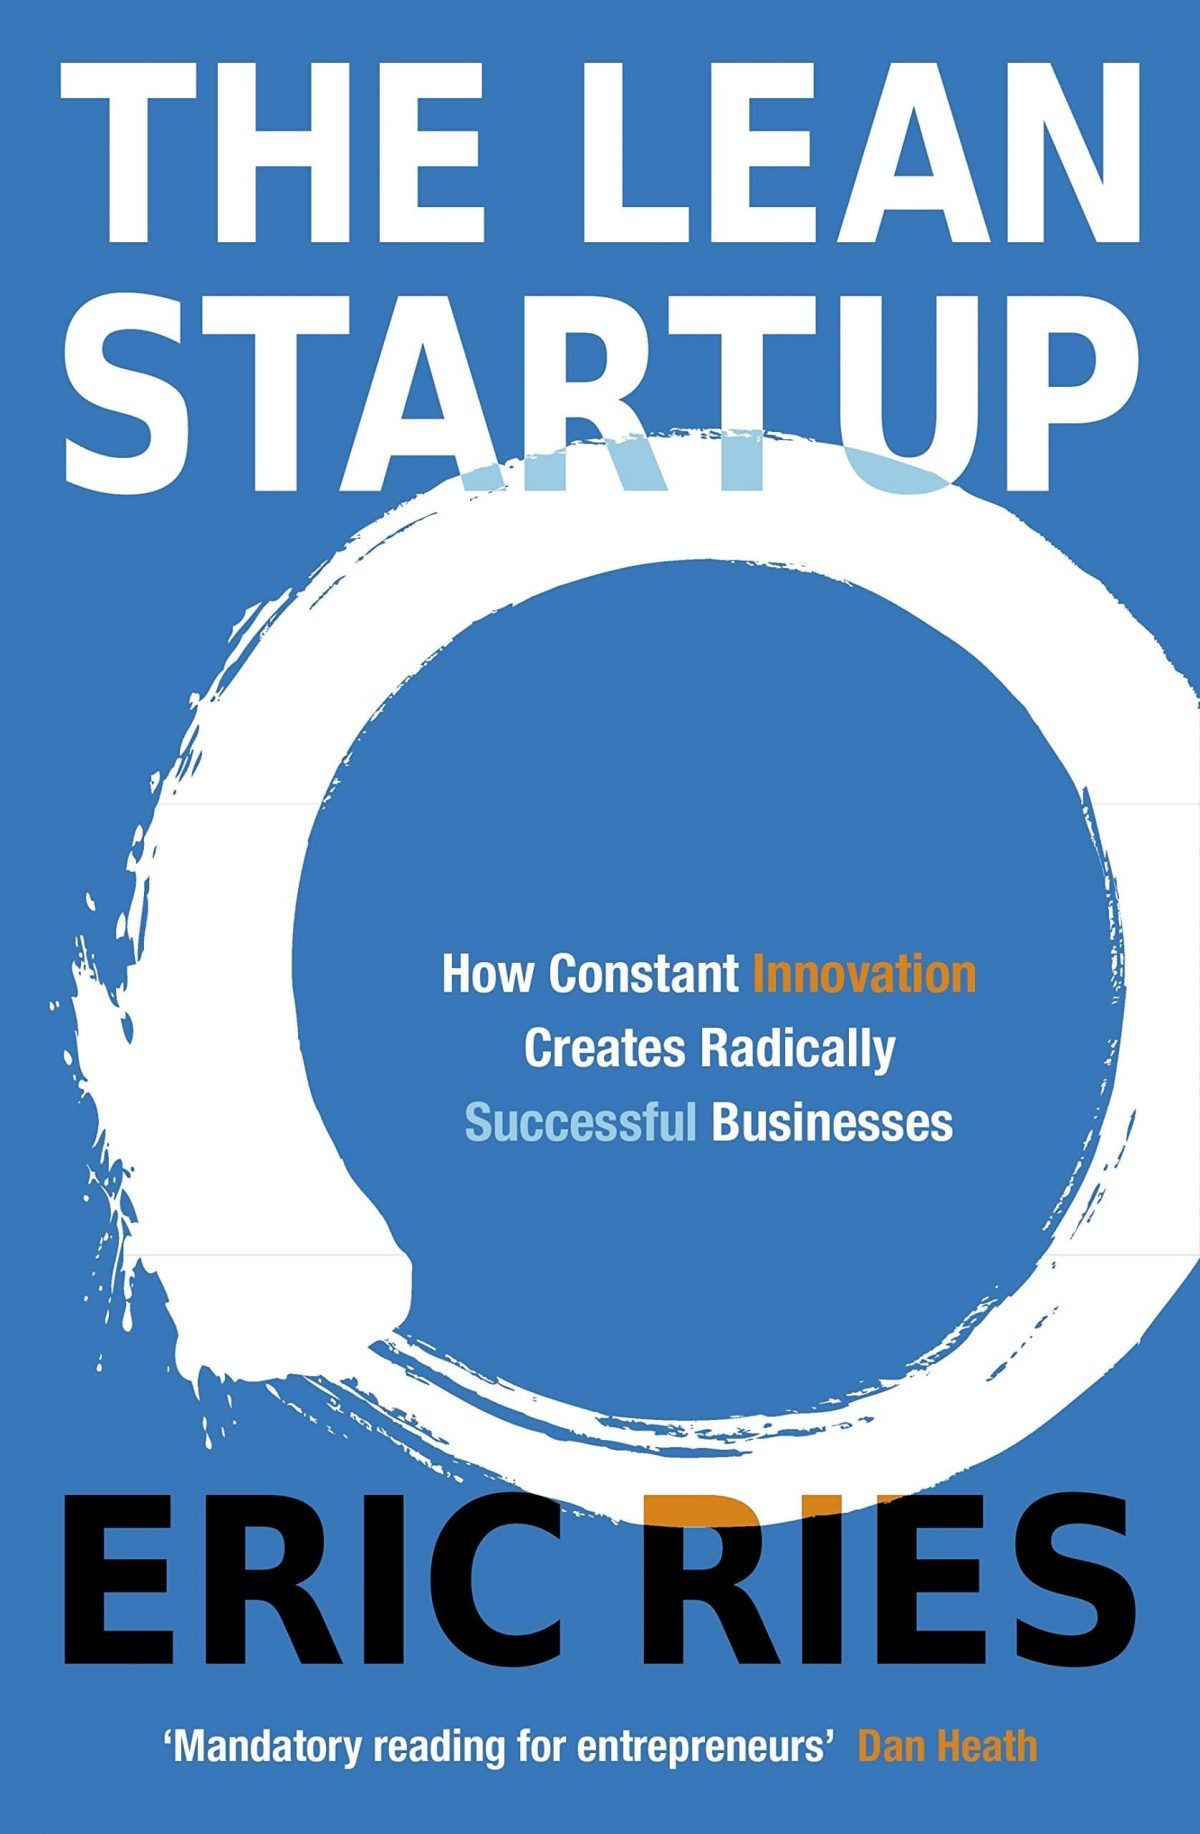 The Lean Startup book has valuable lessons for minimum viable product.